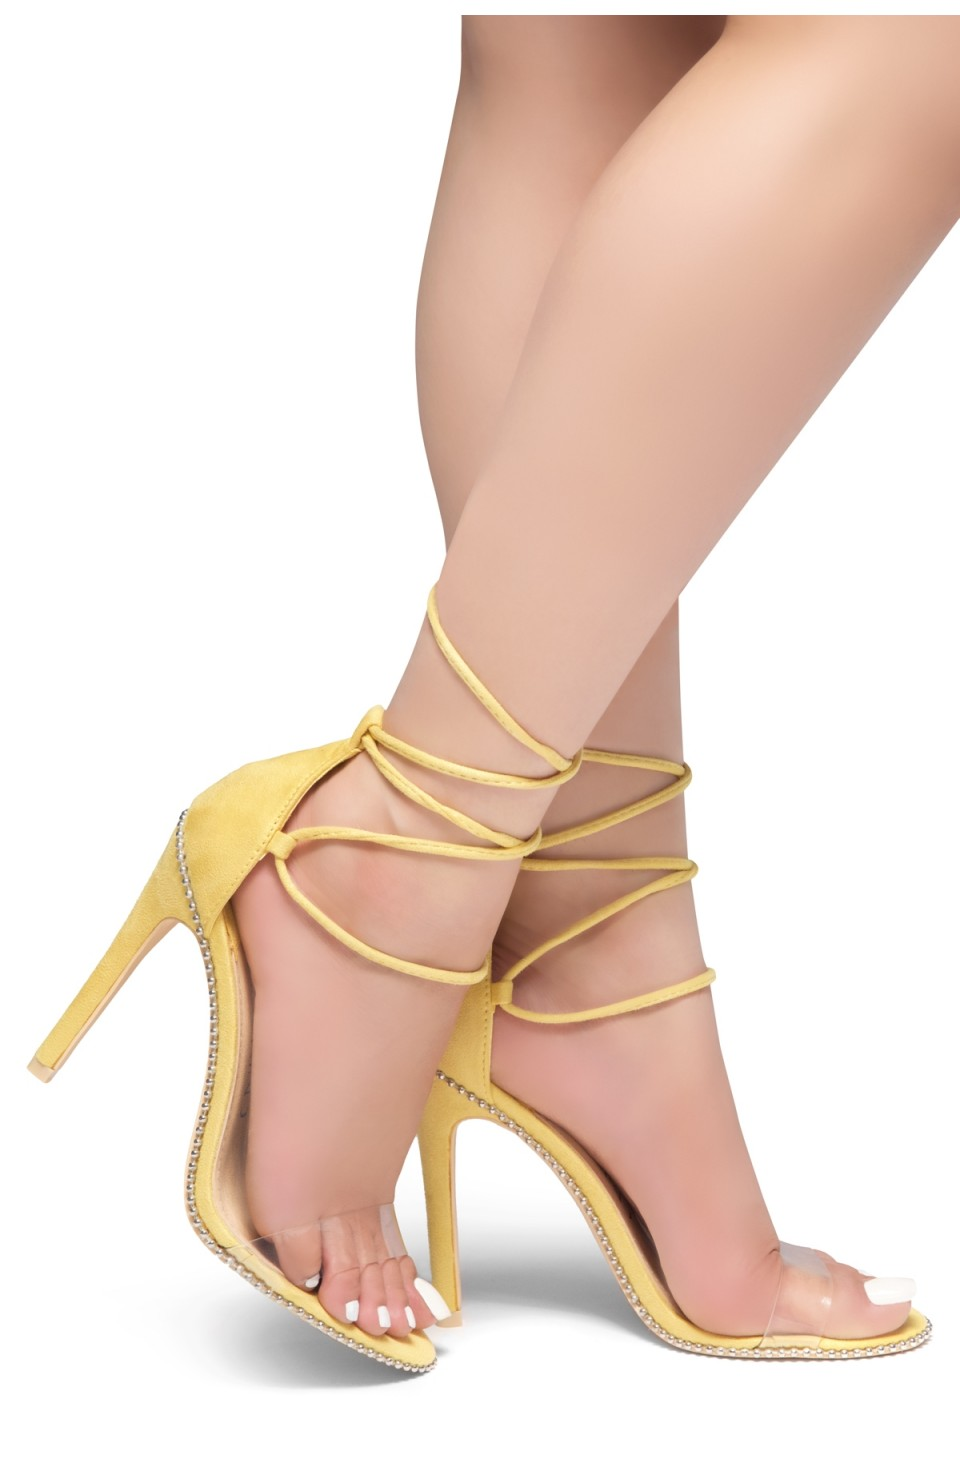 HerStyle Caveena- Suede Back Closure, Ankle-Tie lace up, Open Toe Stiletto Heel (Yellow)